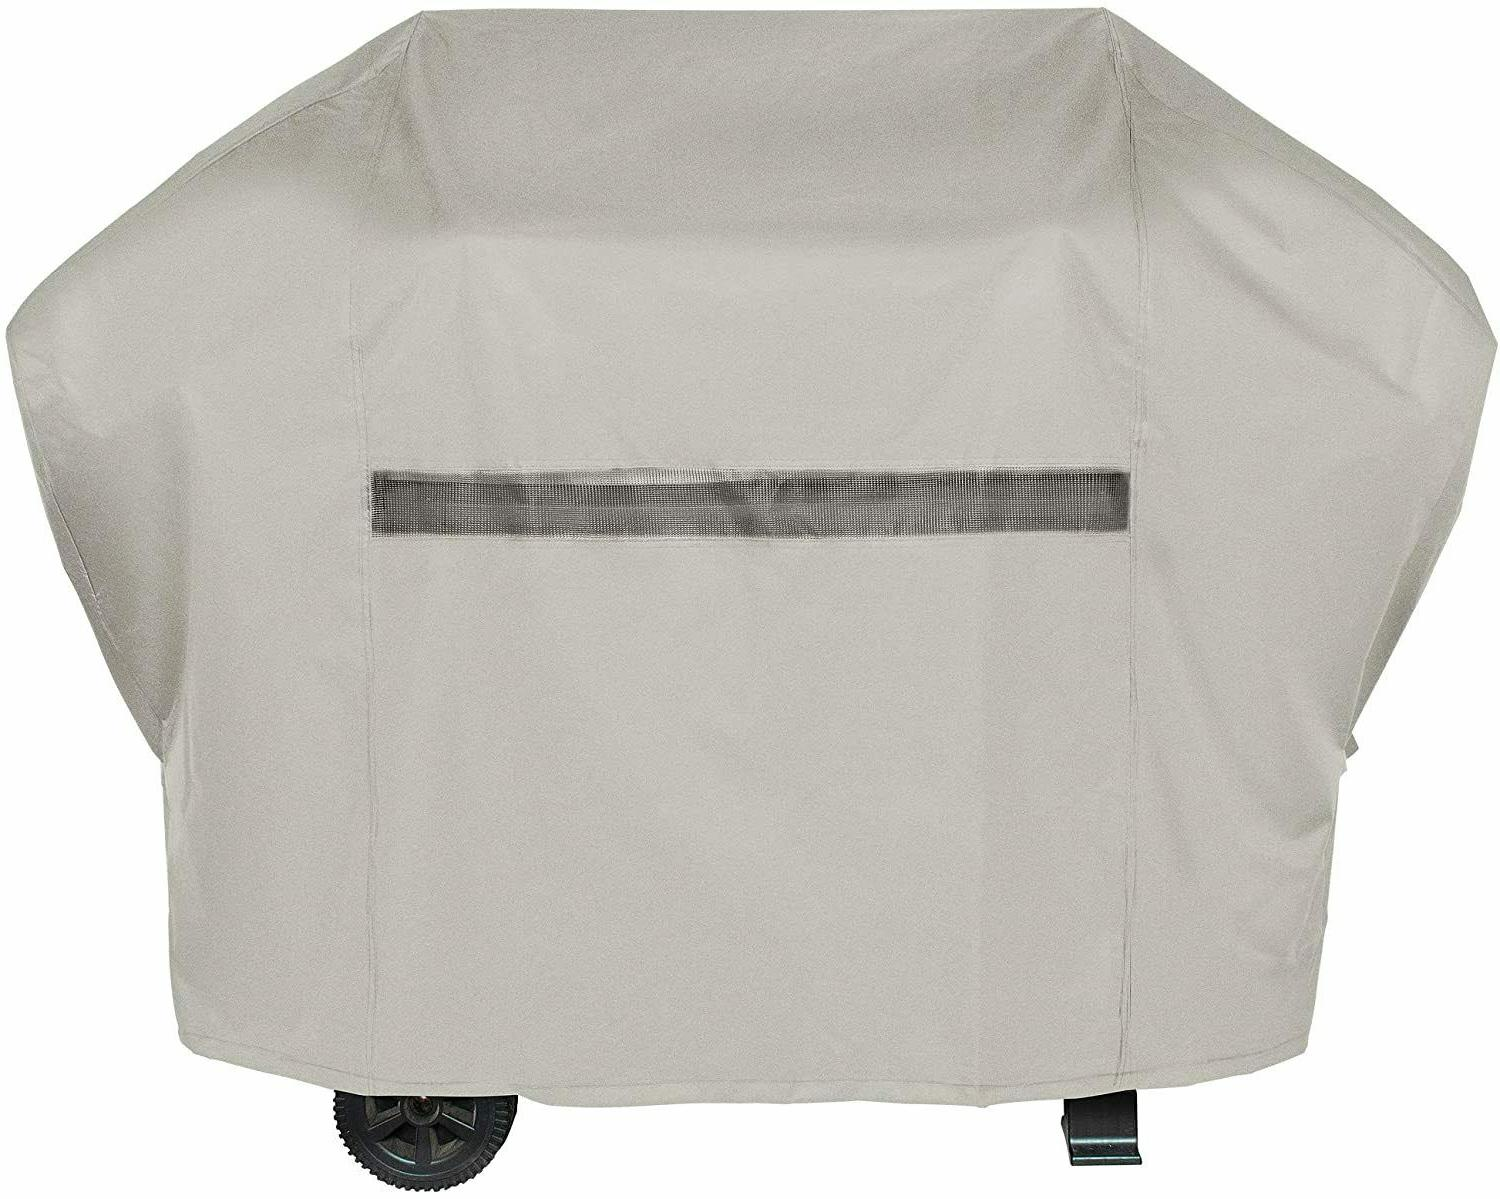 65 inch smoker grill cover for weber